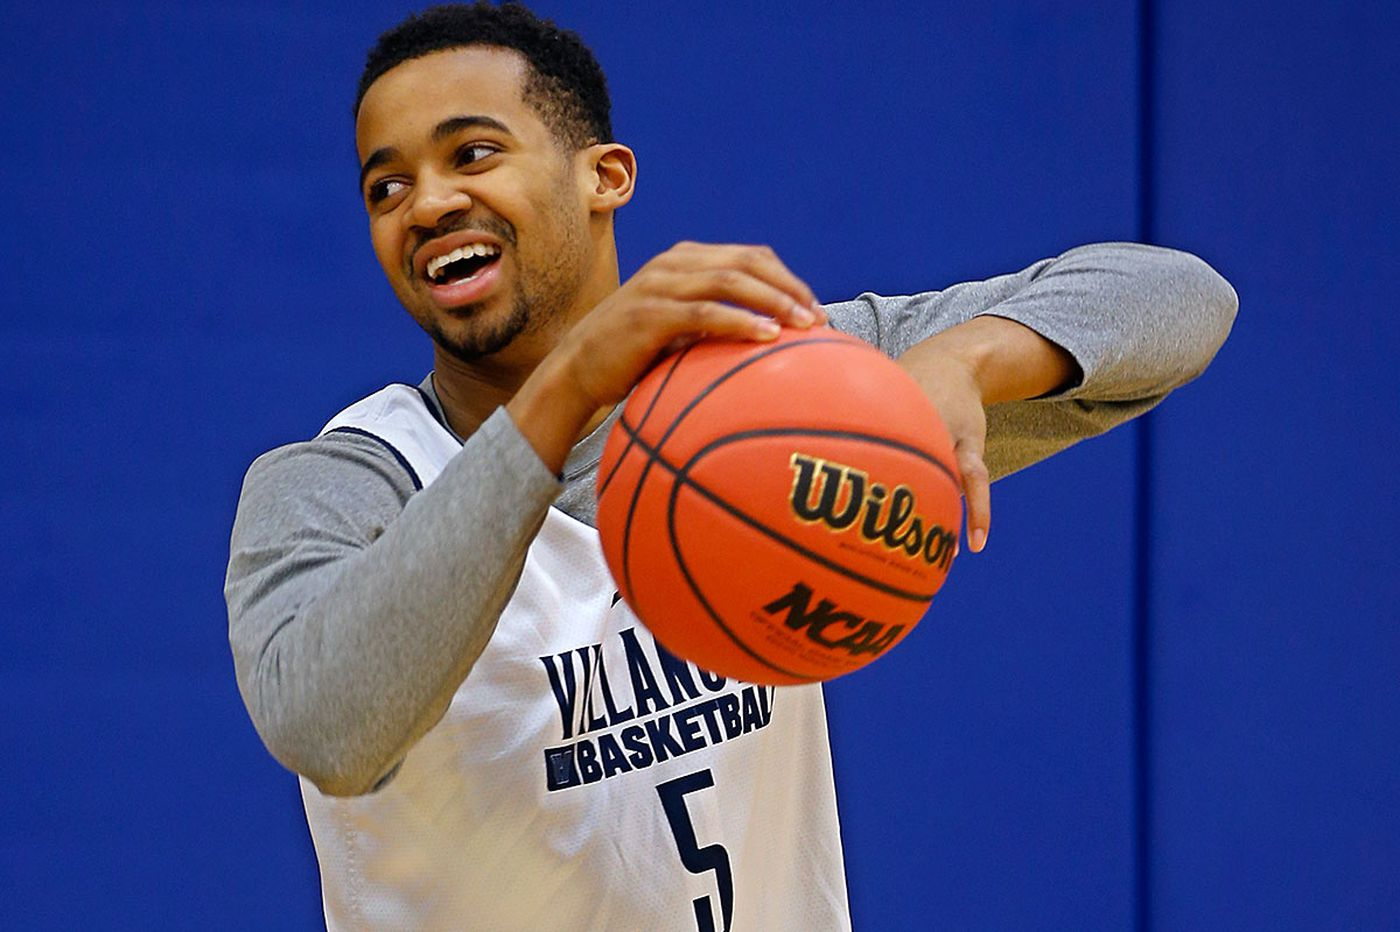 Villanova's reserves give defense its bite